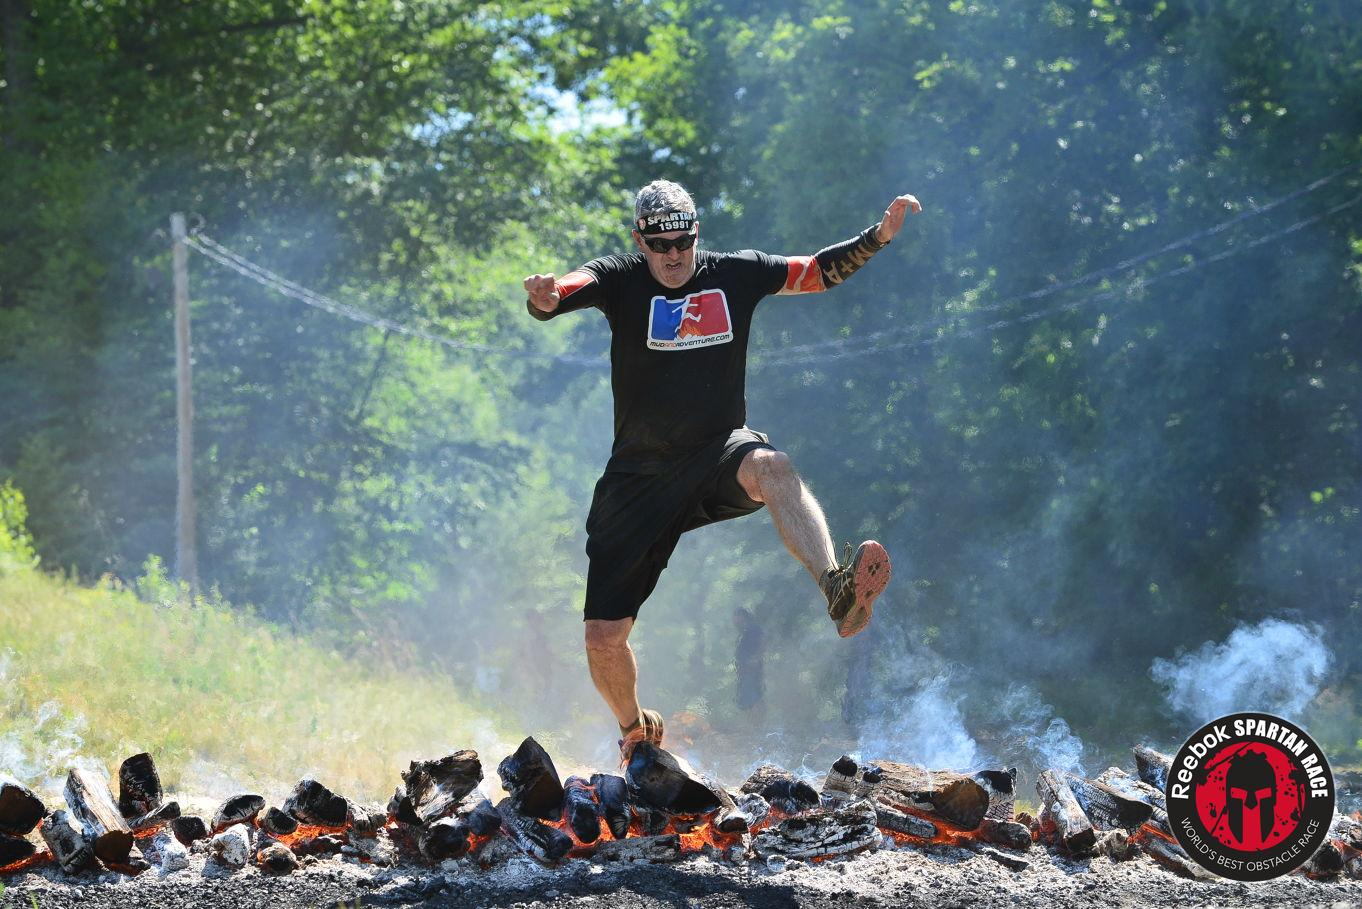 Christopher jumps over Spartan fire awkwardly